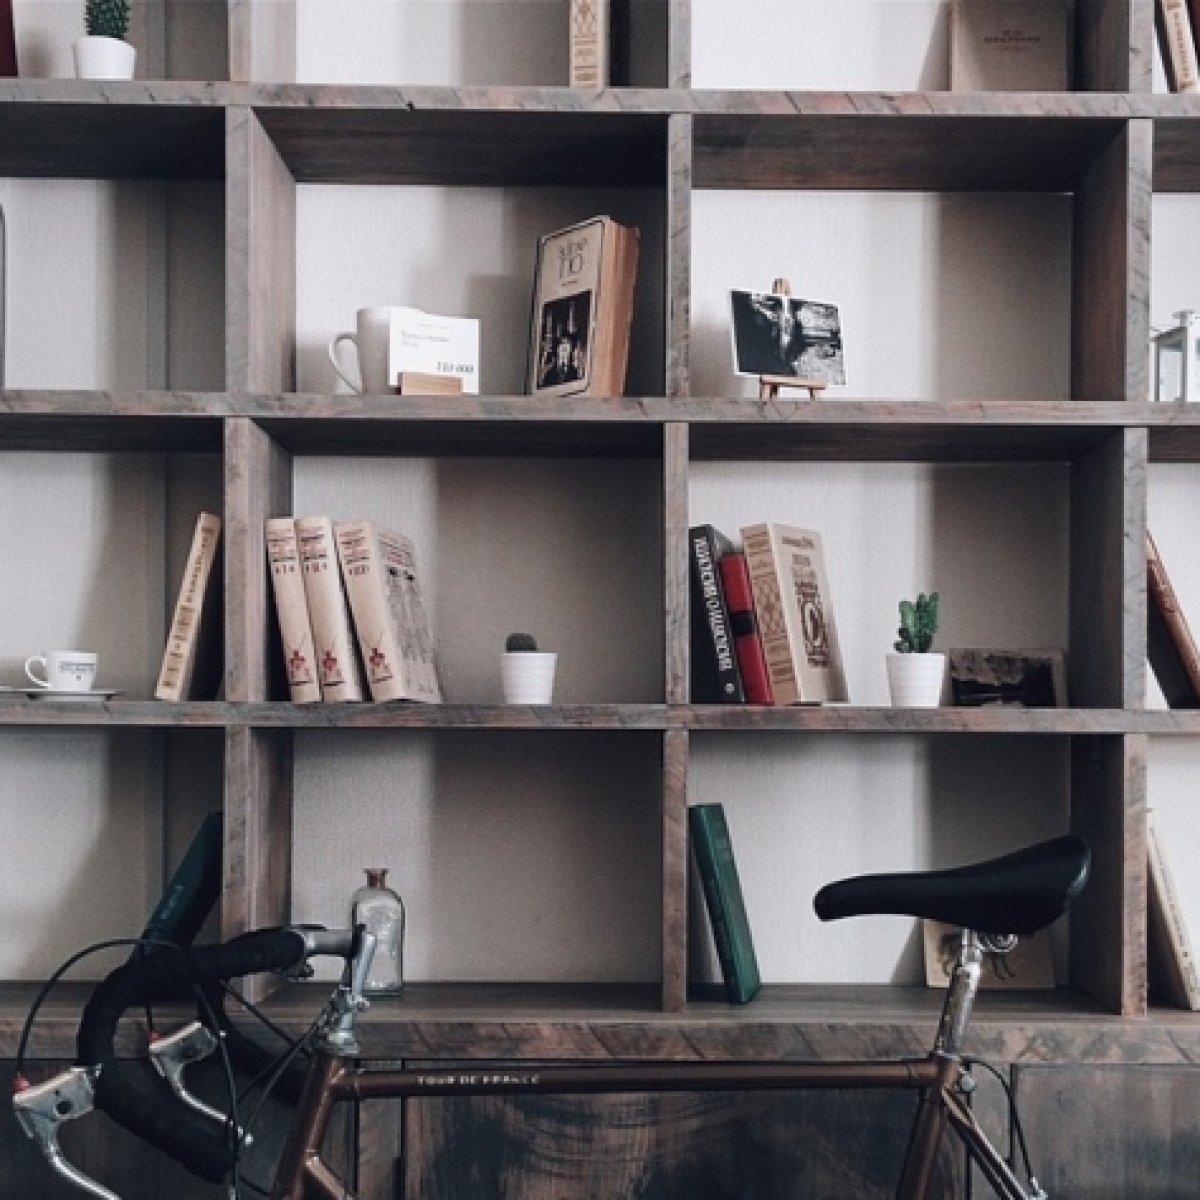 Book Review: A book that graces the bookshelves